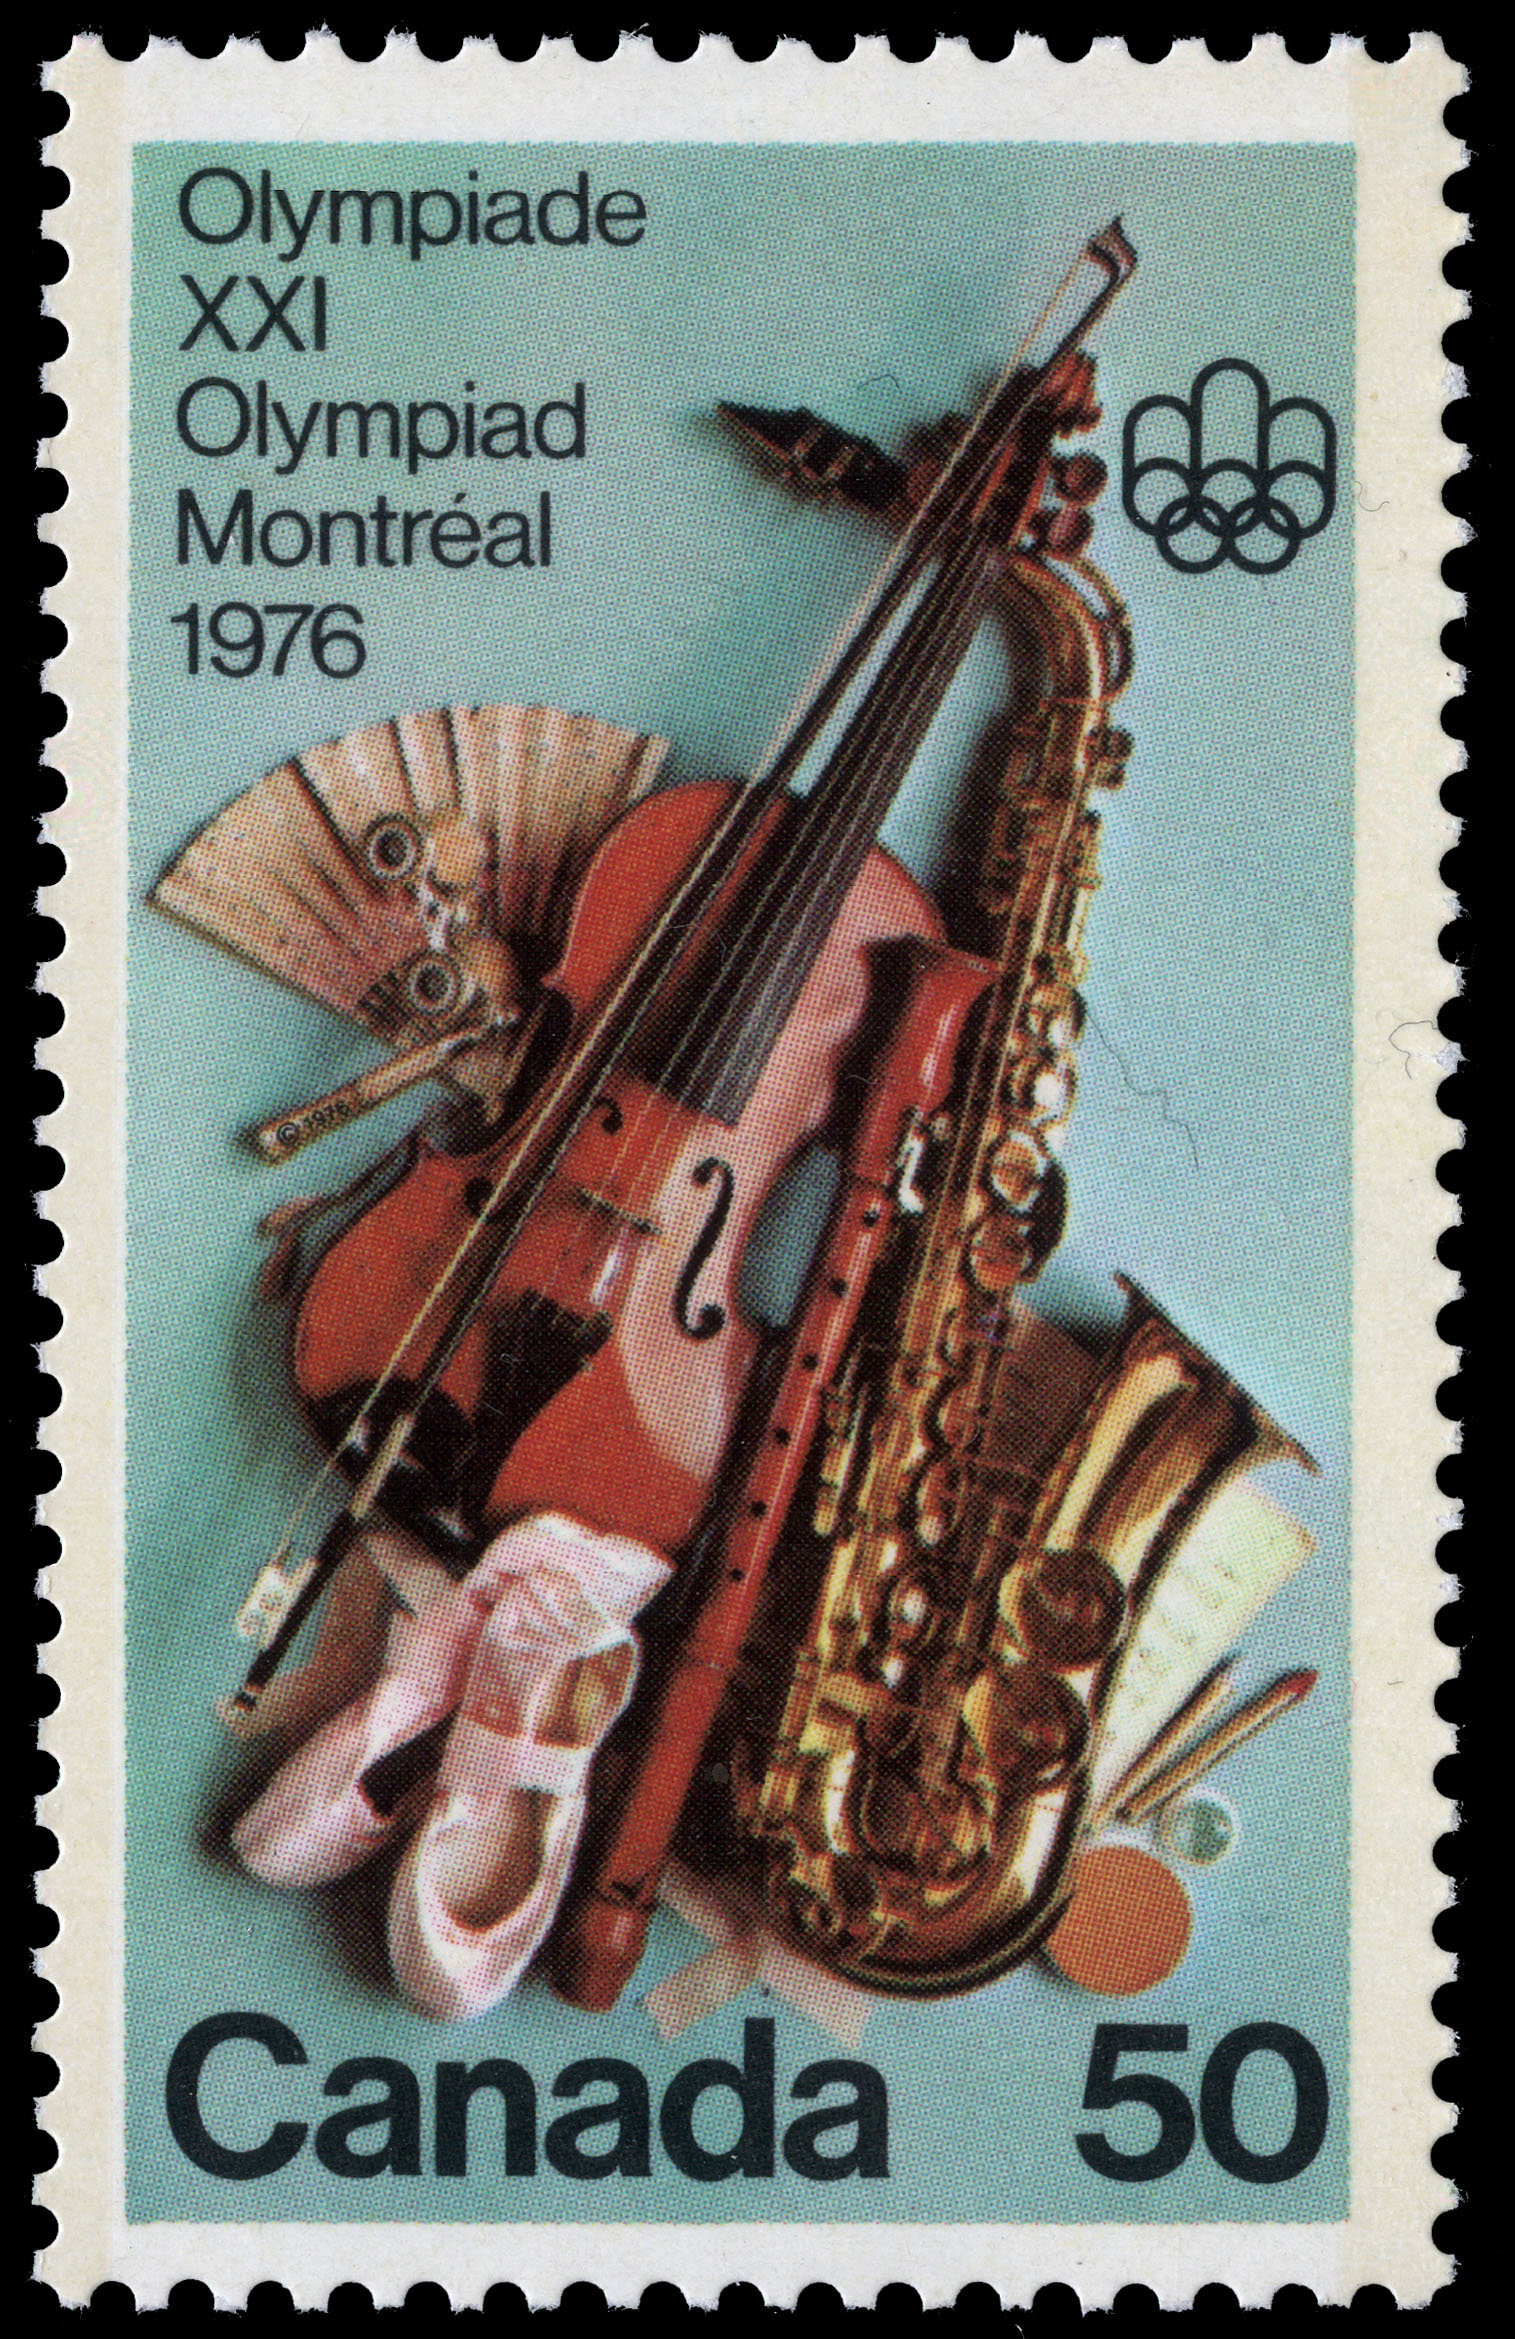 Performing Arts Canada Postage Stamp | 1976 Olympic Games, Arts & Culture Programme